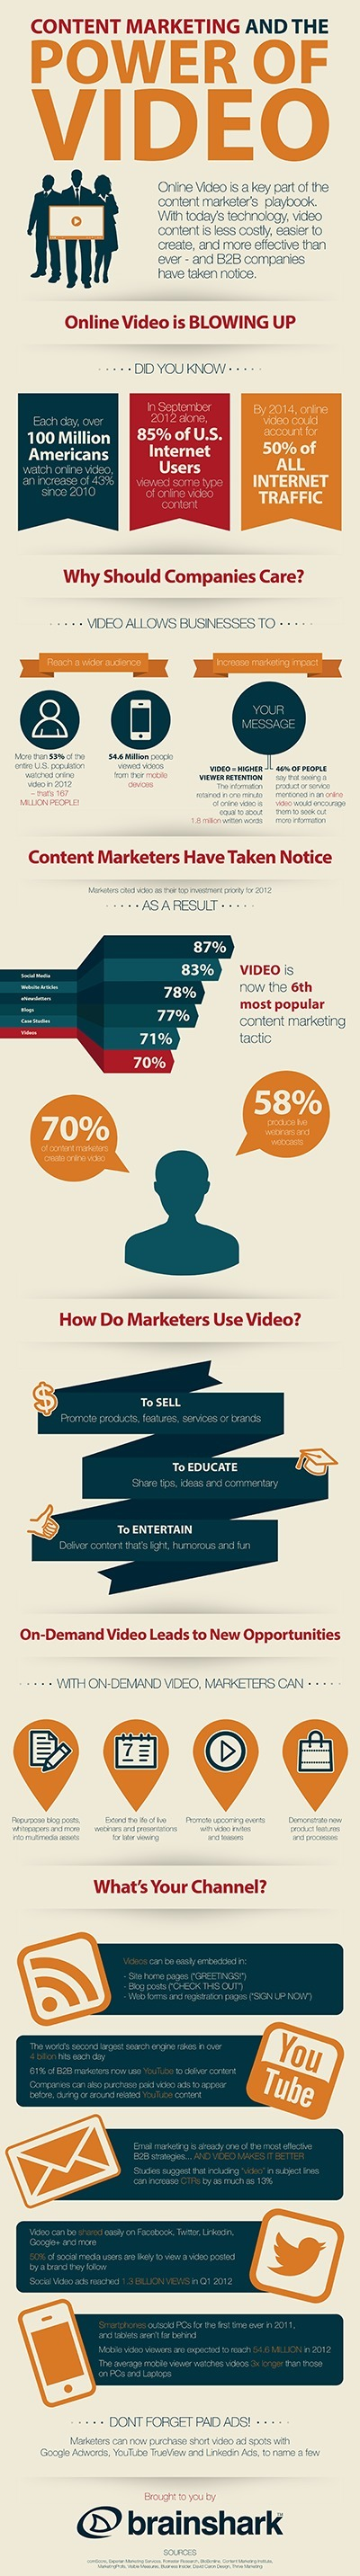 Content Marketing and the Power of Video [Infographic] | Digital & Social Media Marketing | Scoop.it